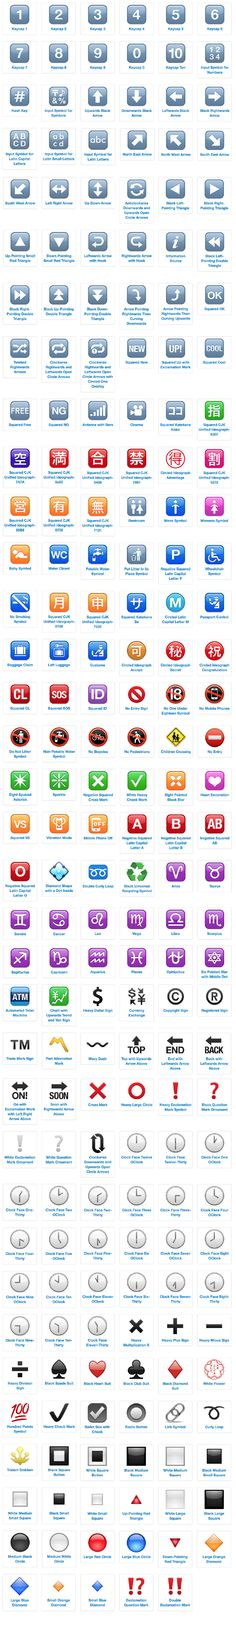 Emoji Icon List Symbols With Meanings And Definitions Emoji